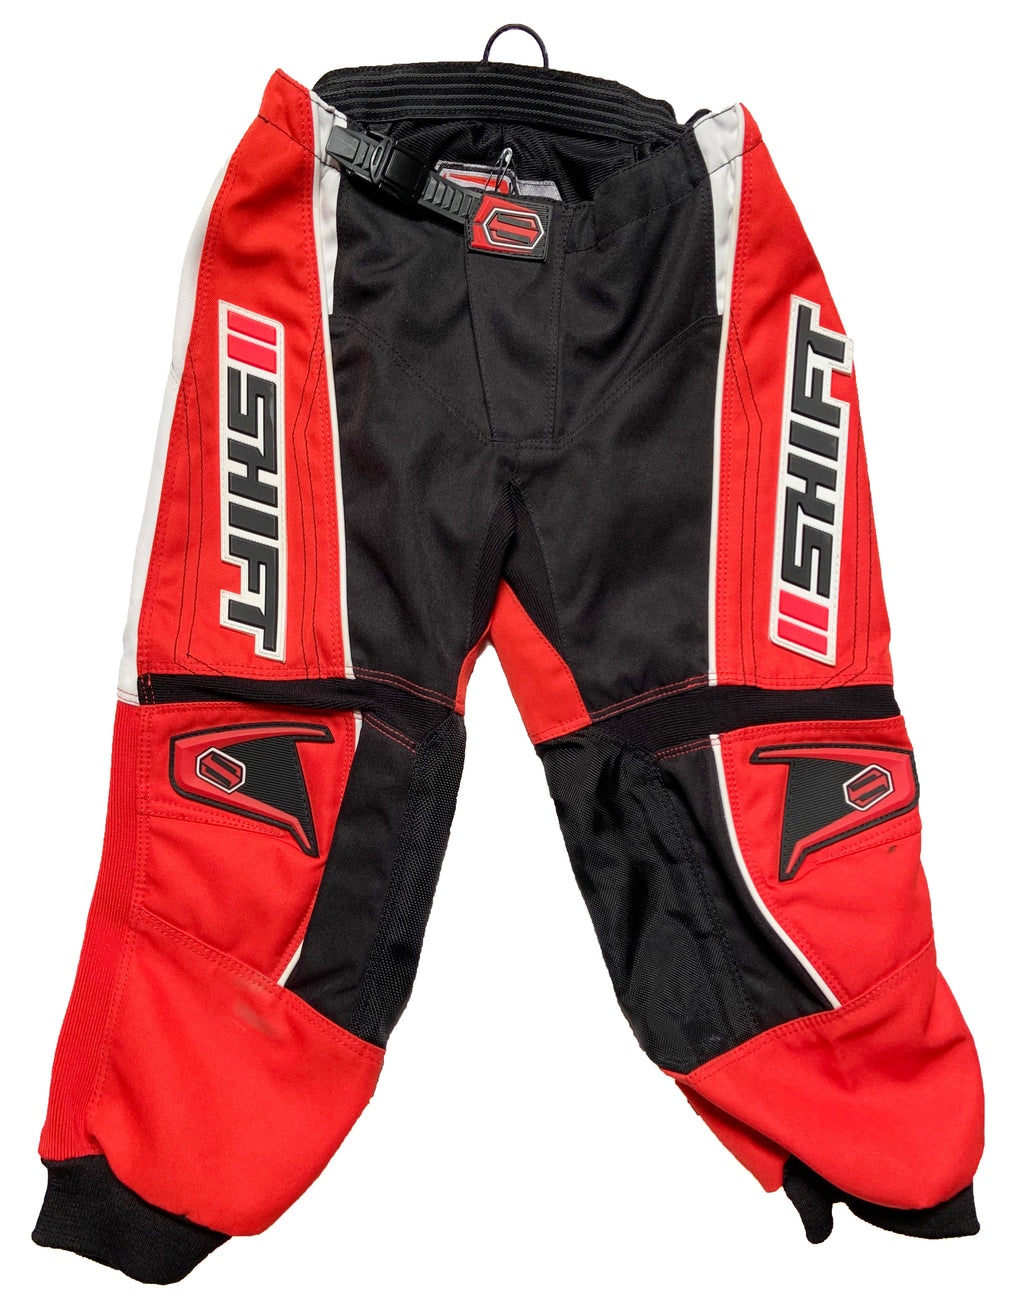 Shift Motocross Pants size 22